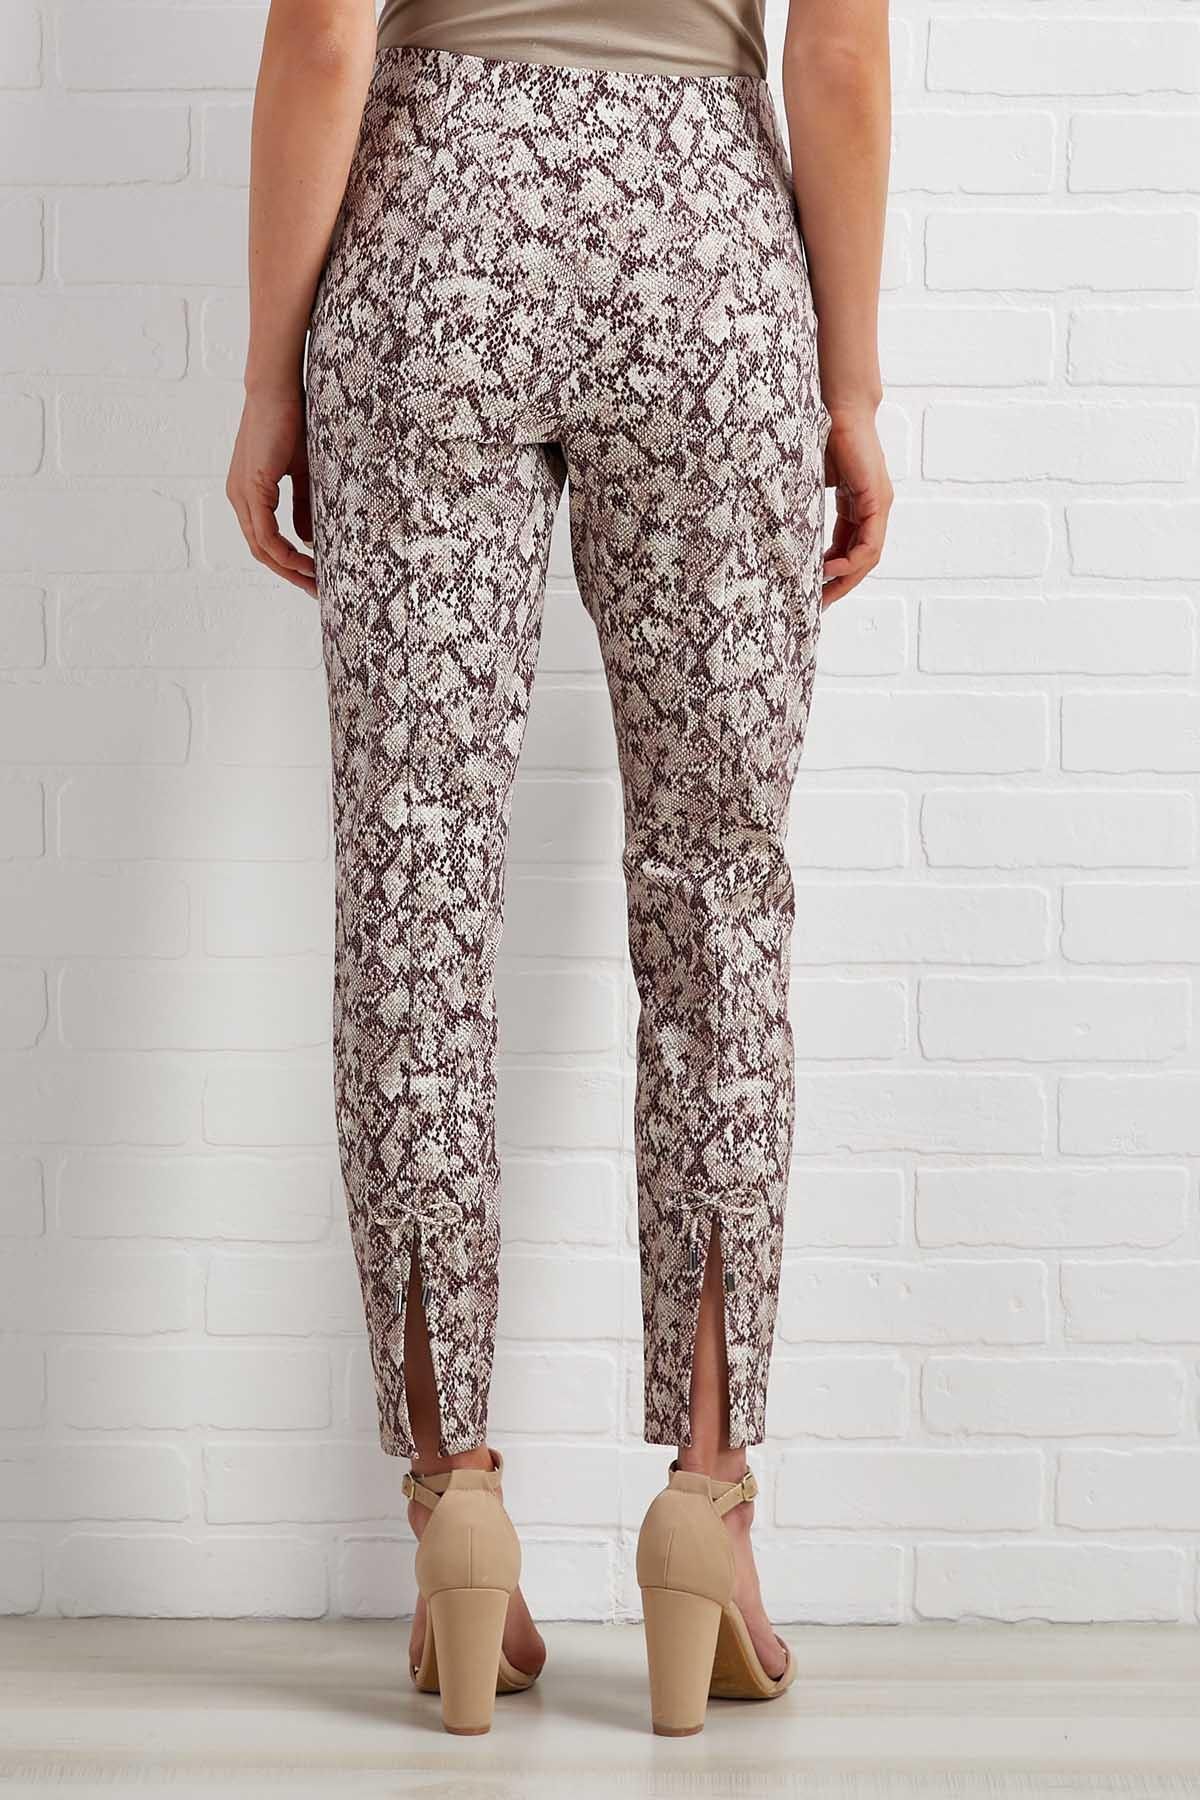 Wildest Dreams Pants